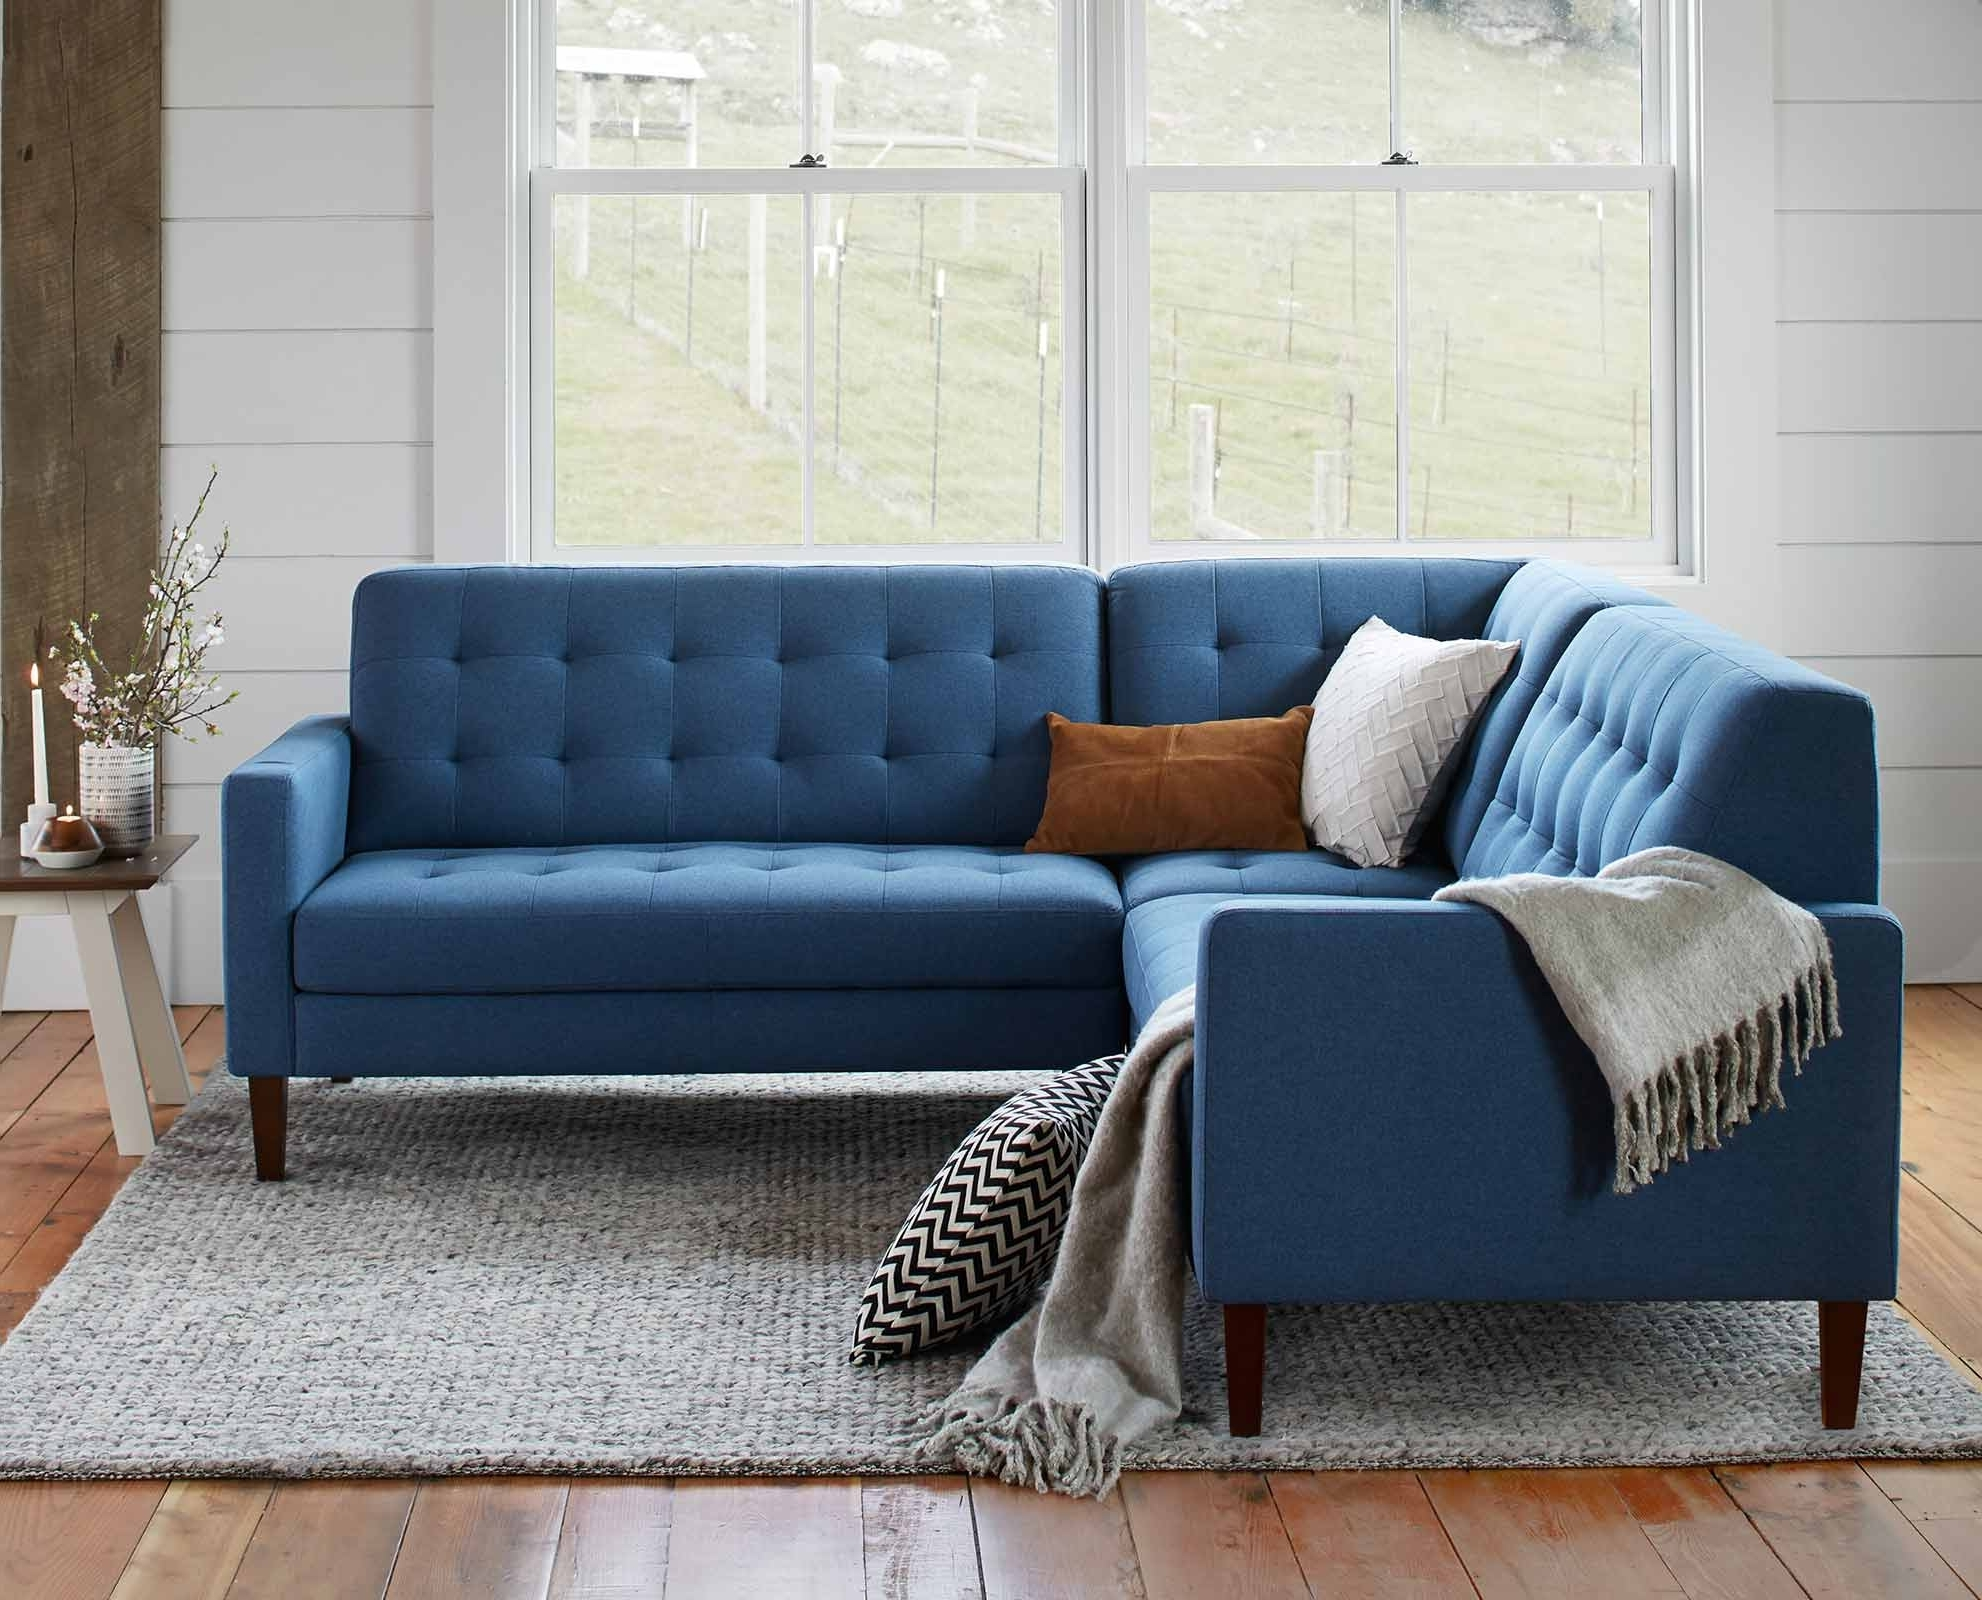 Dania Sectional Sofas Throughout Well Known The Camilla Sectional From Scandinavian Designs – Adopt A Adopt A (View 6 of 20)